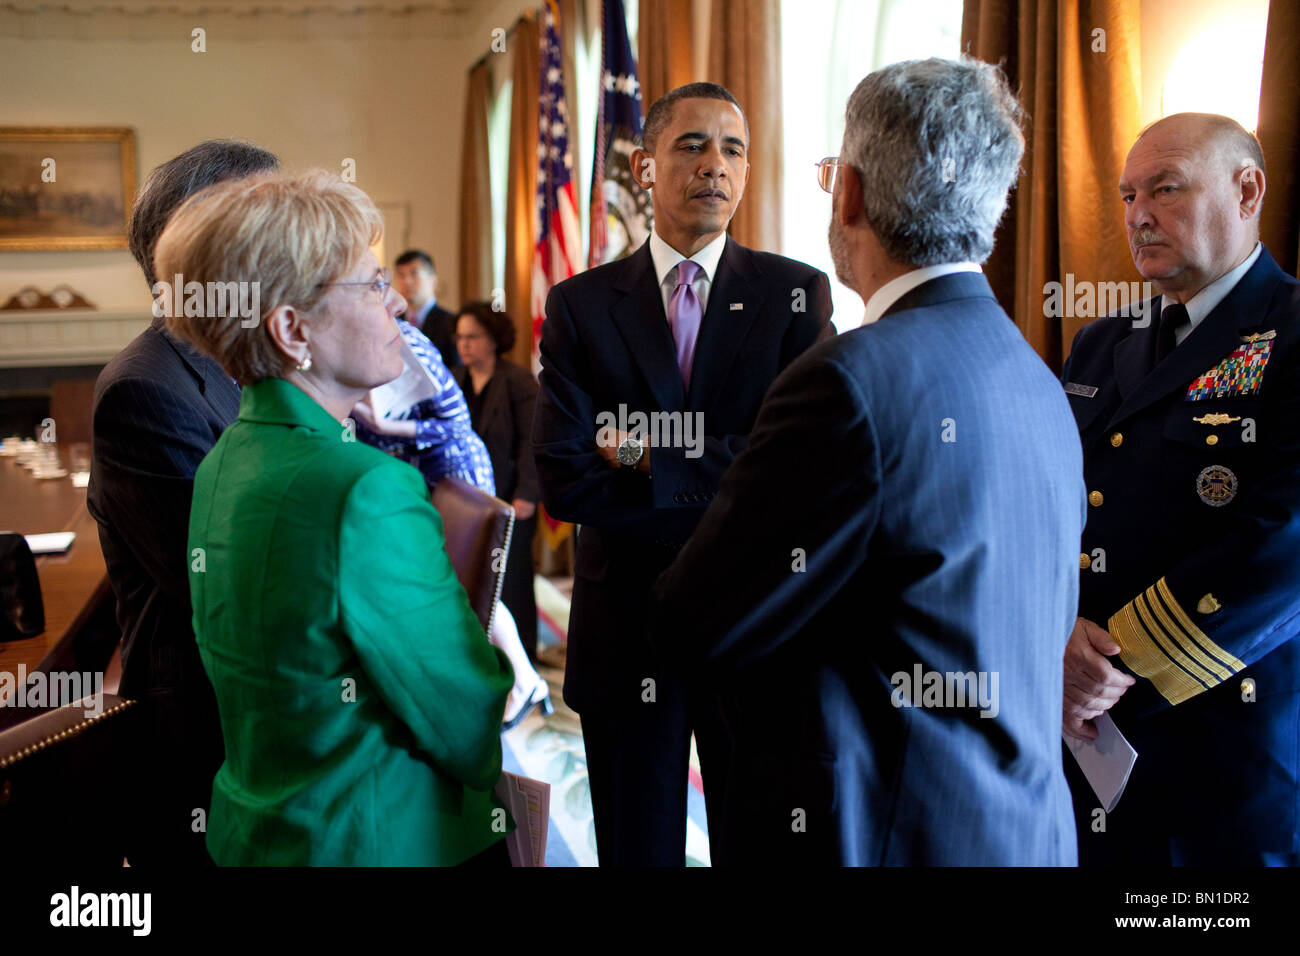 President  Obama talks with cabinet members - Stock Image